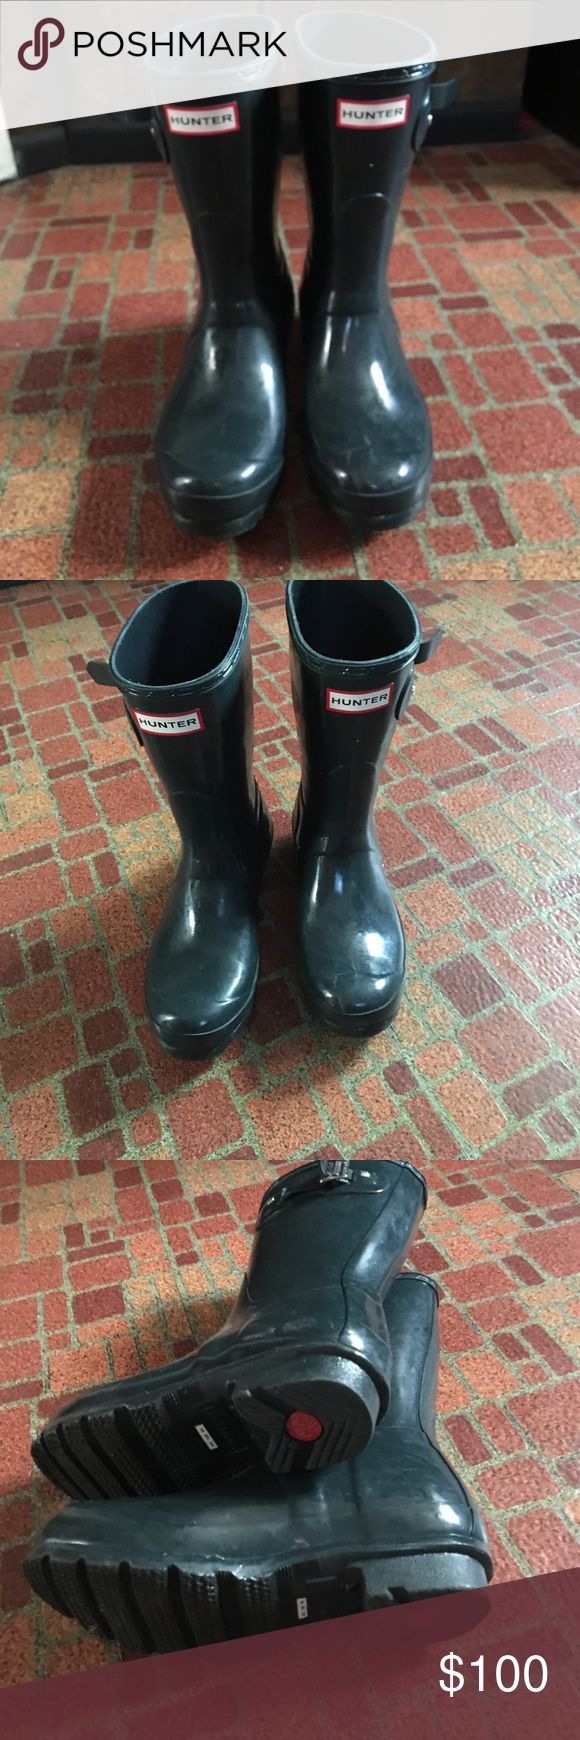 Hunter rain boots Green hunter boots size 5 in kid fits women size 6 like new worn 3 times! Shoes Winter & Rain Boots